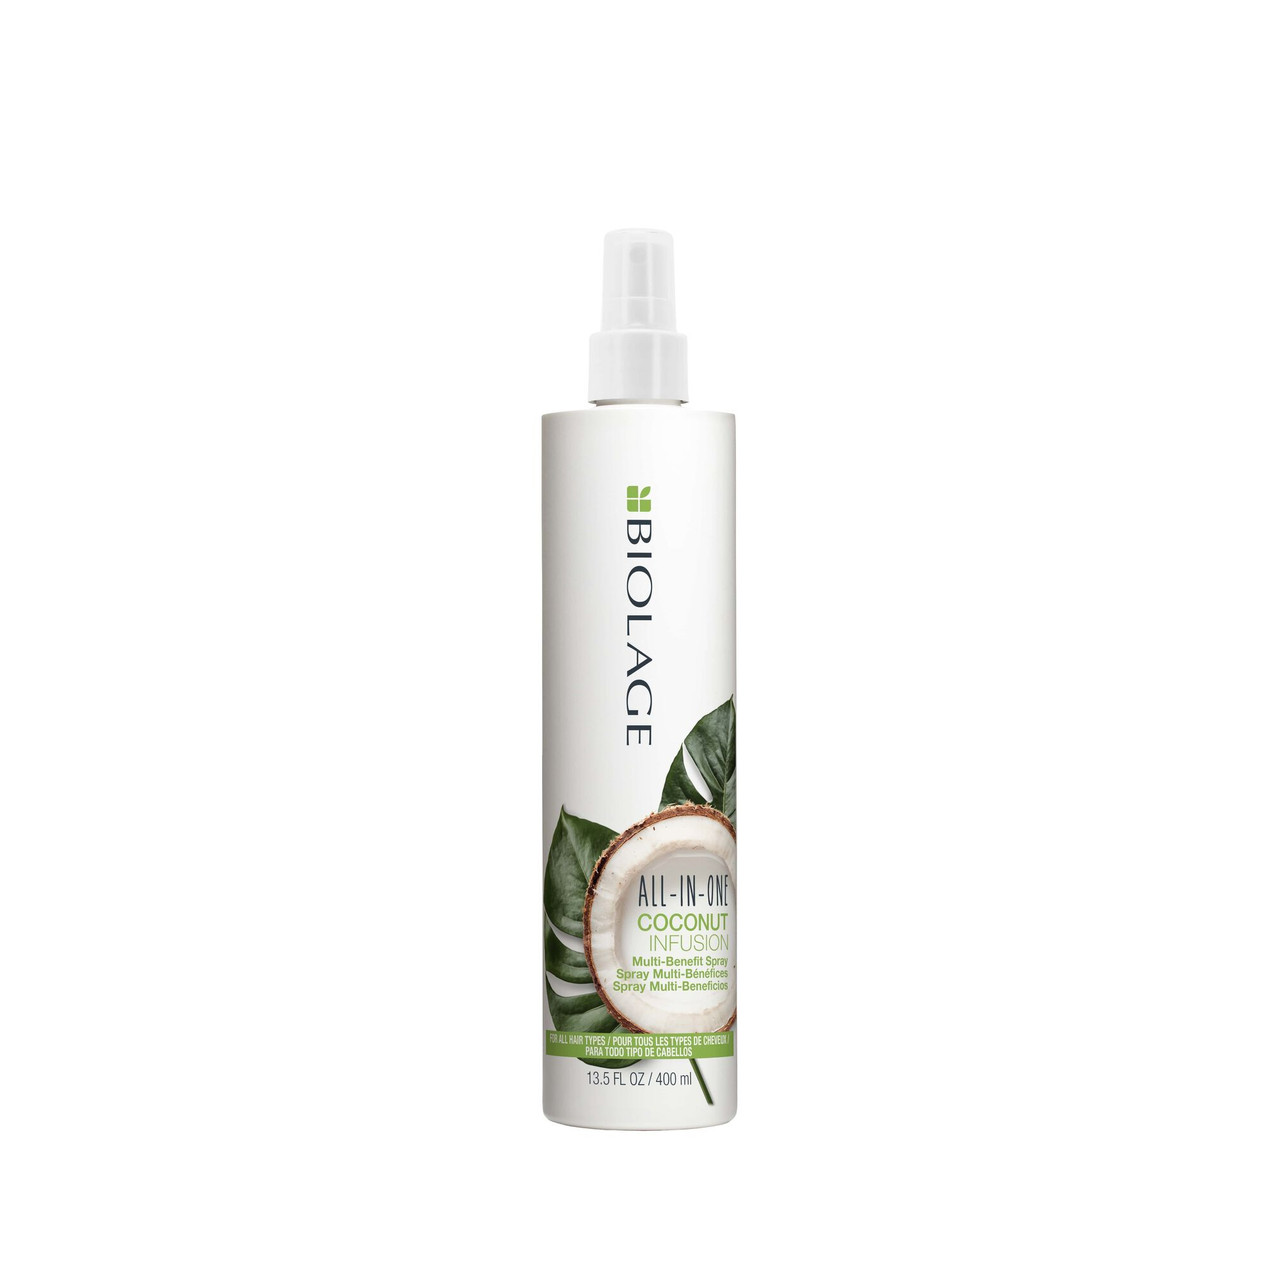 Biolage All-In-One Coconut Infusion Multi-Benefit Spray 13.5 oz